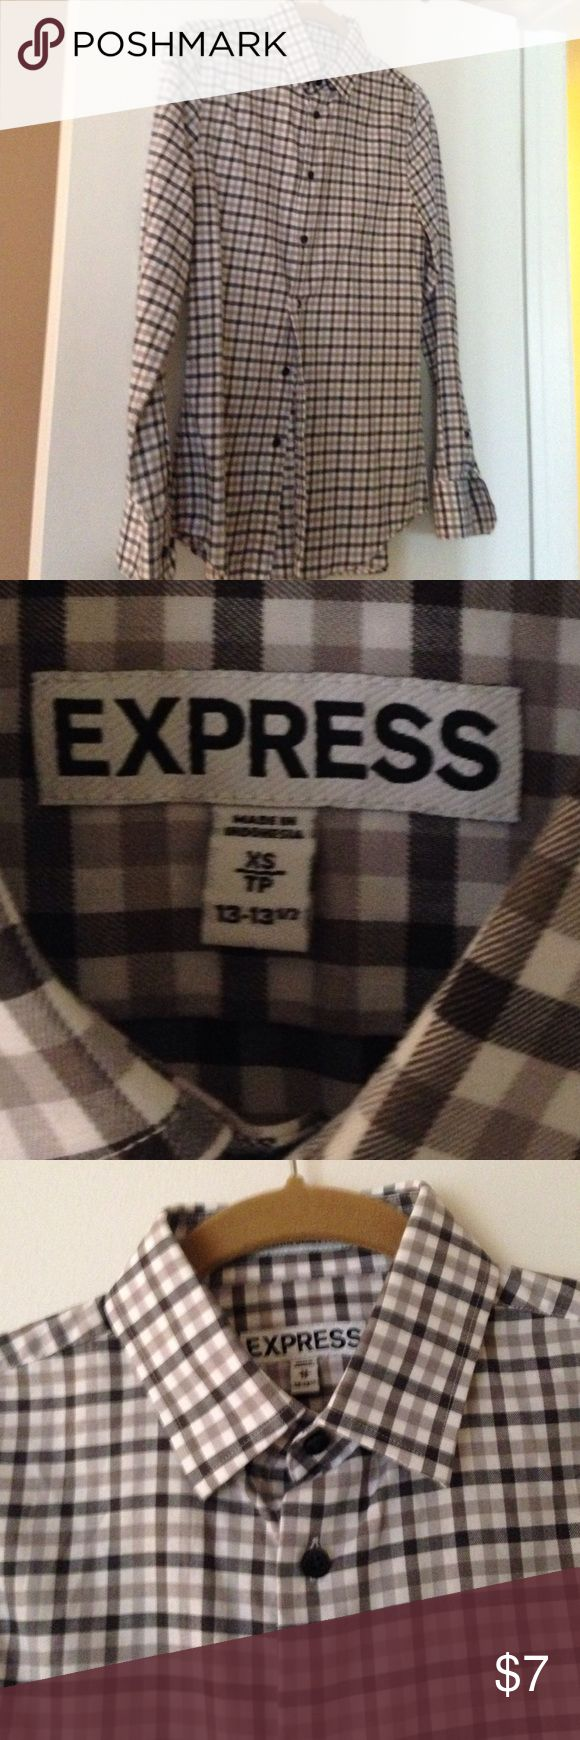 Button down check shirt Express extra small men's shirt. Approx size 4 for ladies. 100% cotton. Grey and alive check. Barely worn. Express Tops Button Down Shirts